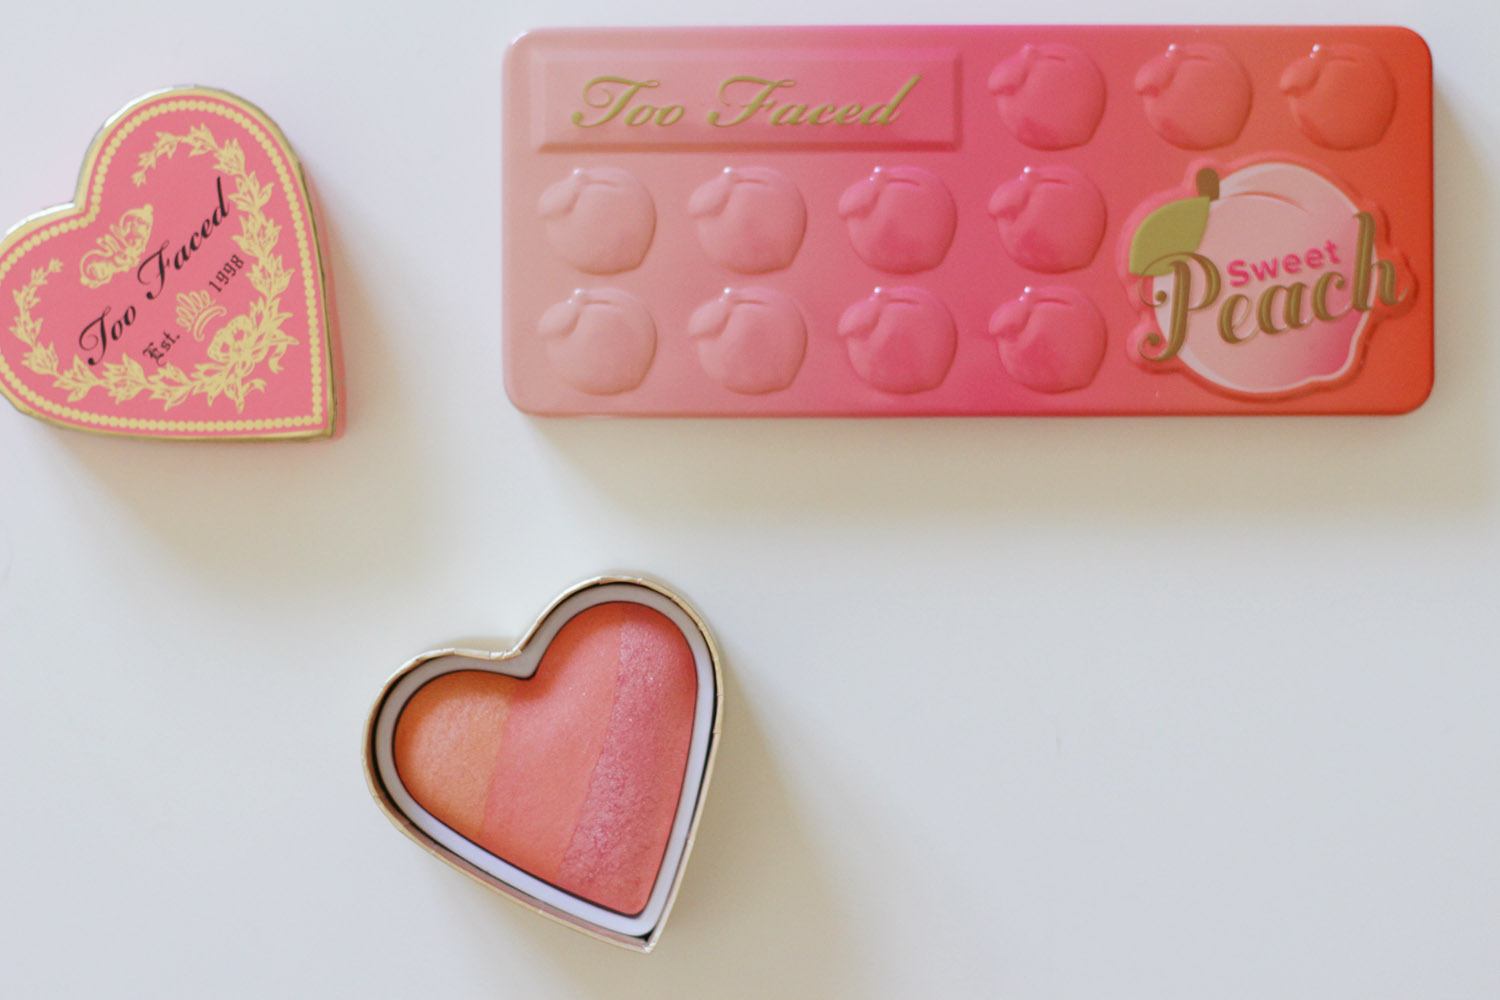 TooFaced05